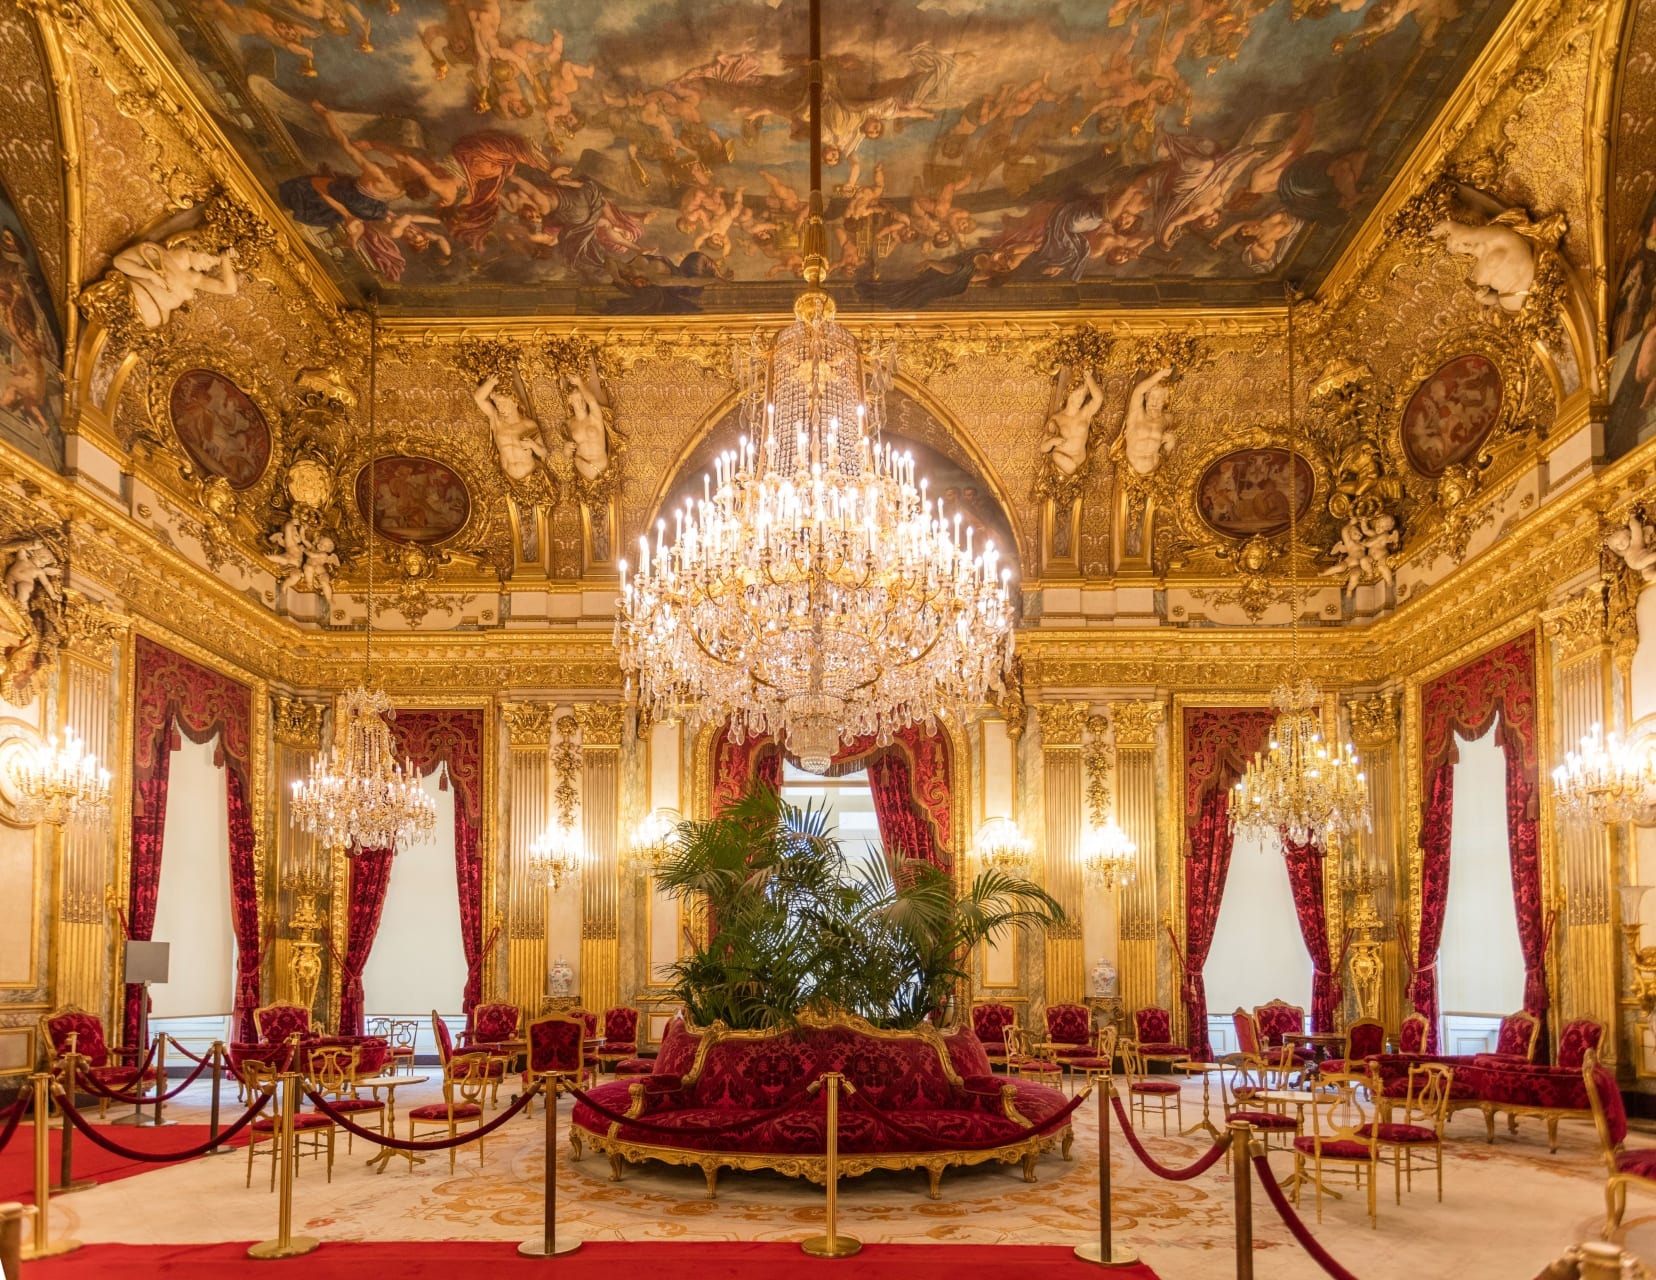 Paris - Louvres: Royal and Imperial Apartment